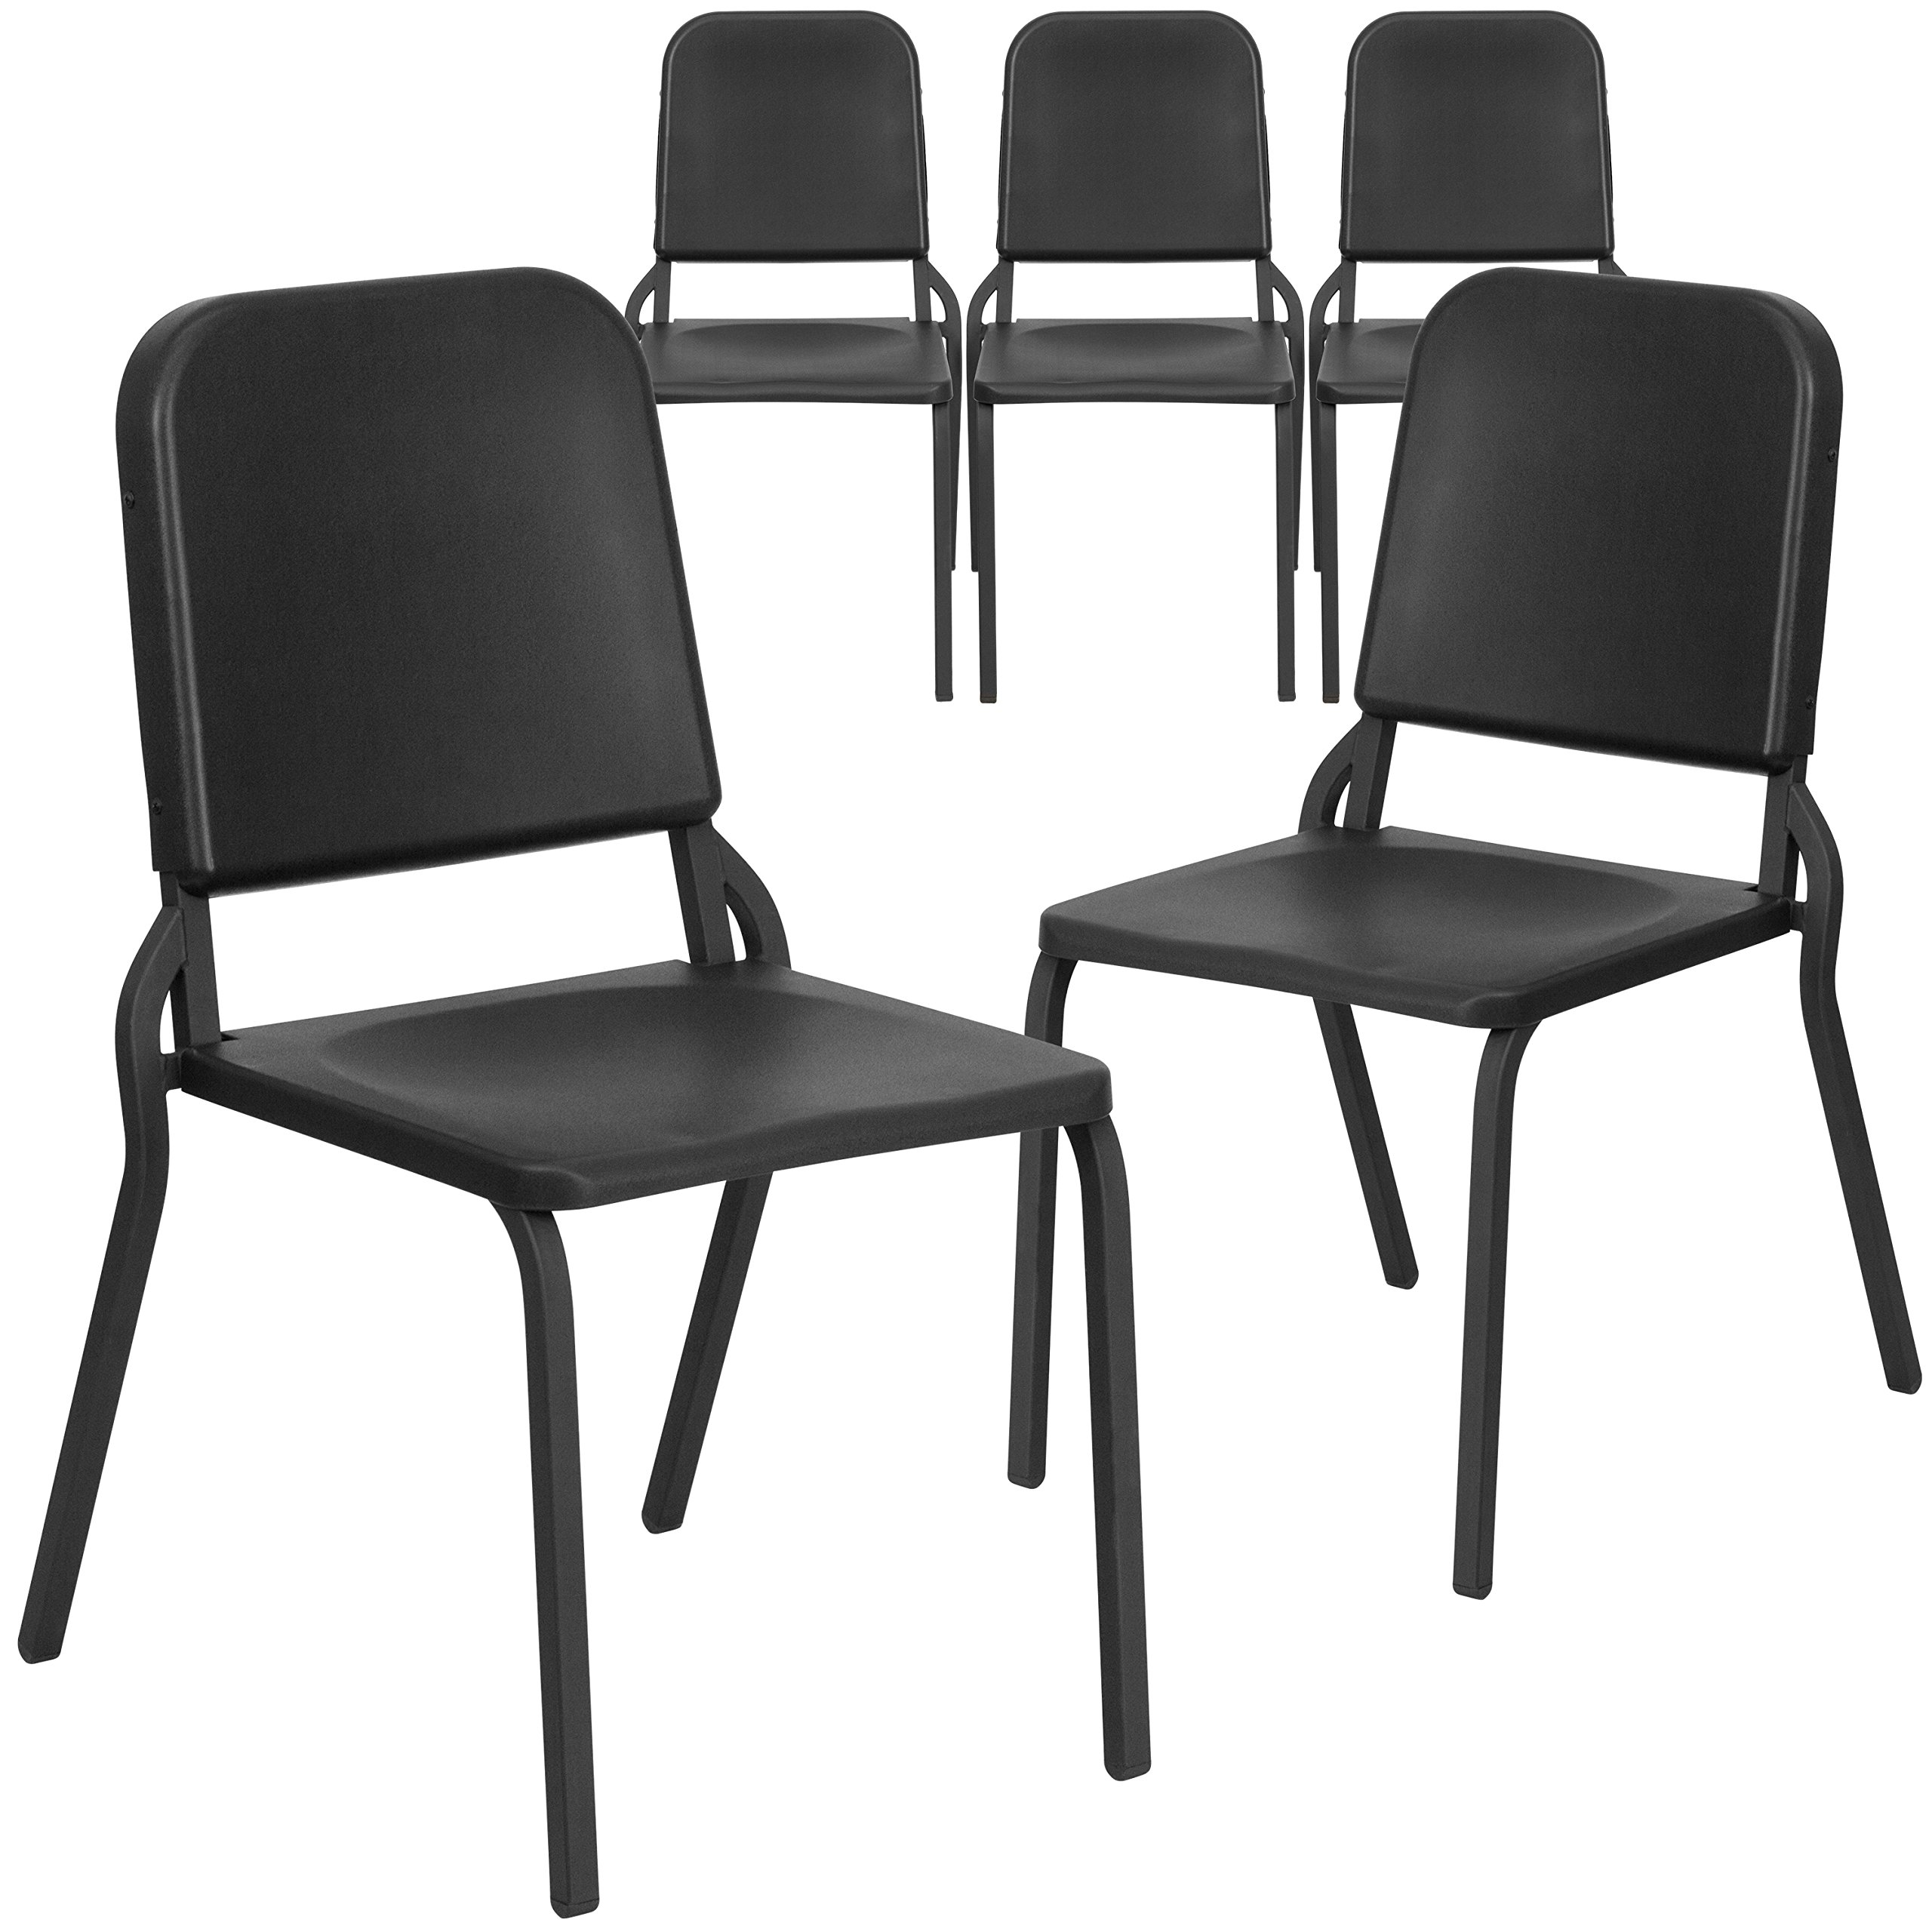 Flash Furniture 5 Pk. HERCULES Series Black High Density Stackable Melody Band/Music Chair by Flash Furniture